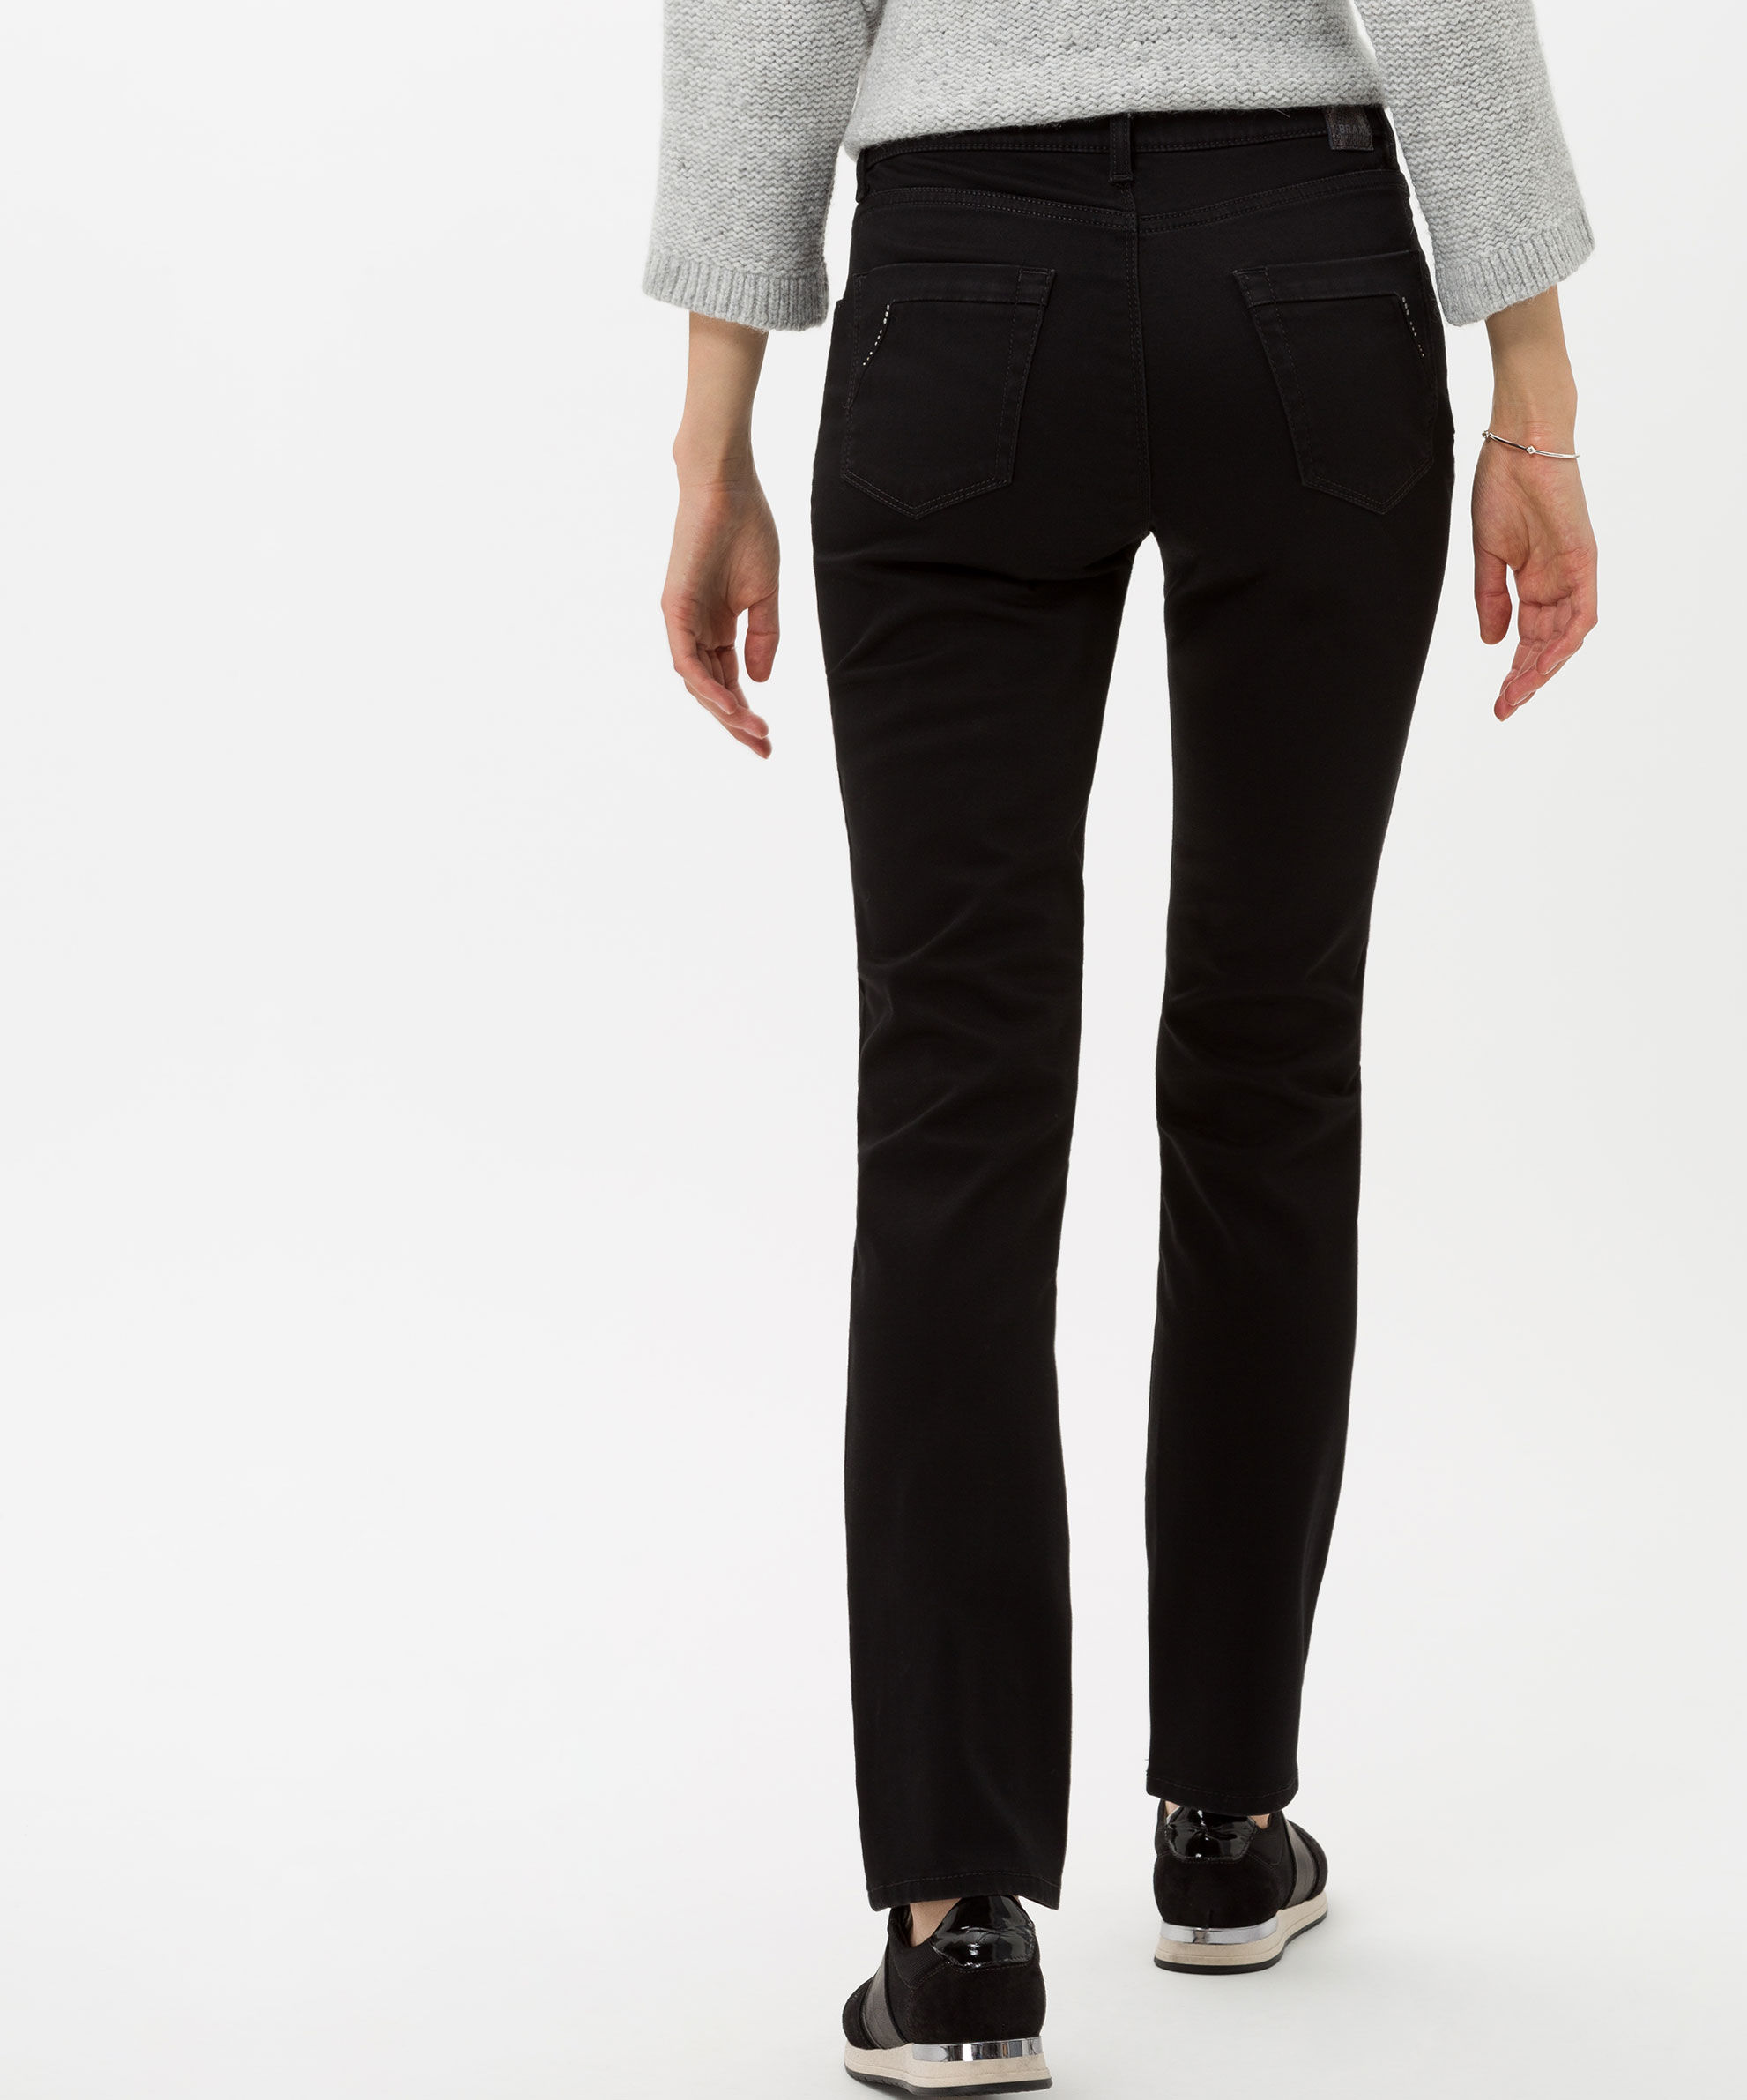 BRAX Mary jeans, Clean Black, 42 Normal